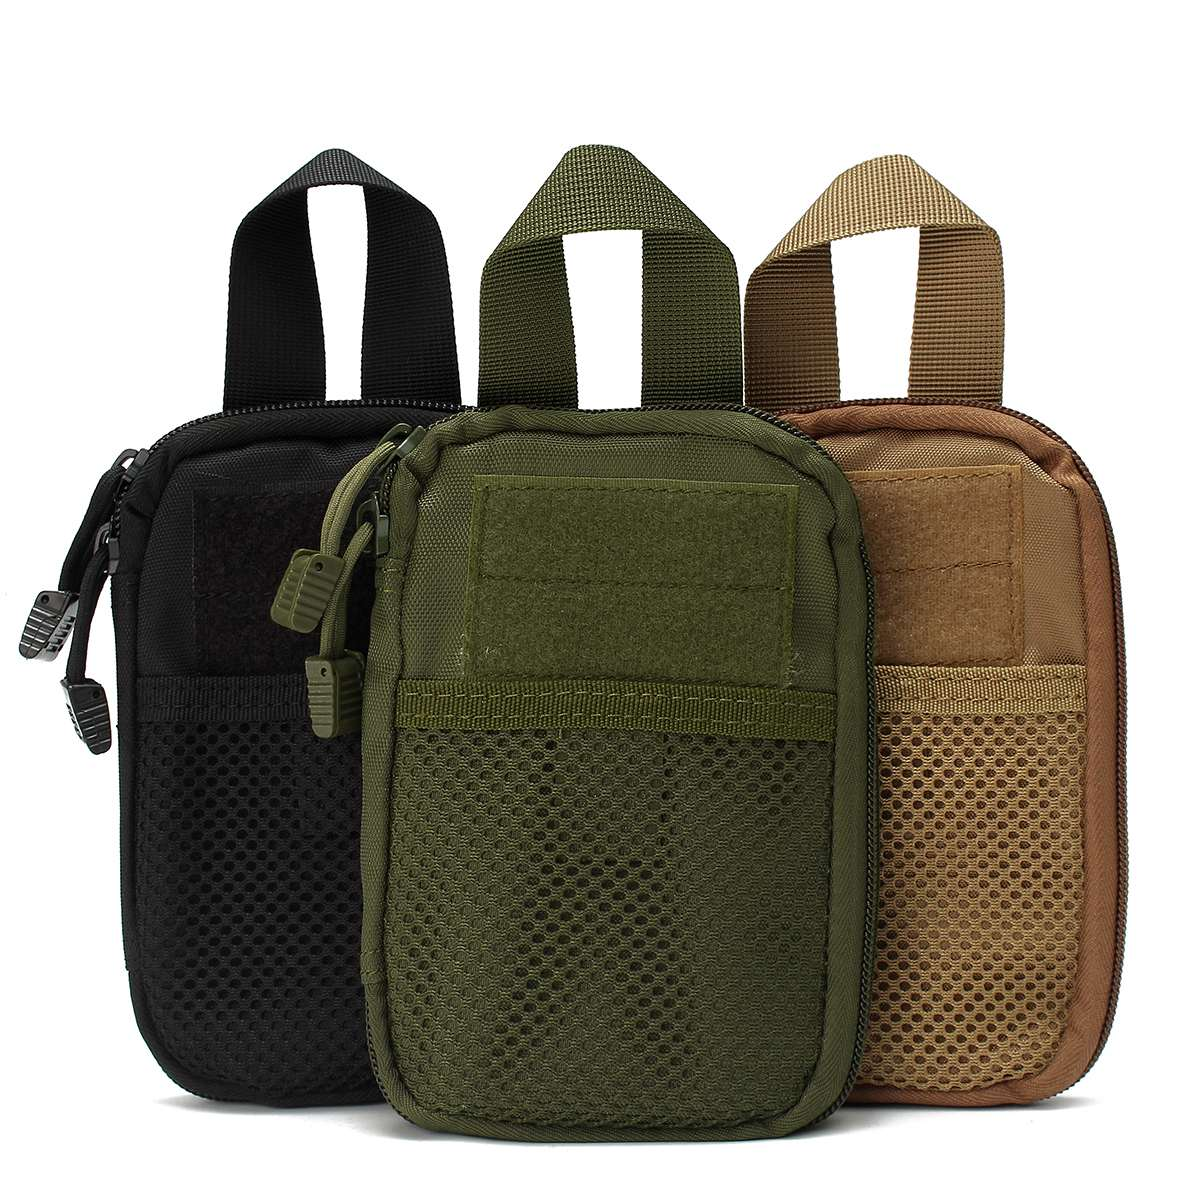 Safurance Tactical Molle Waist Pack Medical First Aid Utility Pouch Emergency Bag Security Safety Treatment Pack first aid bag only molle medical emt cover outdoor emergency military program ifak package travel hunting utility pouch j2